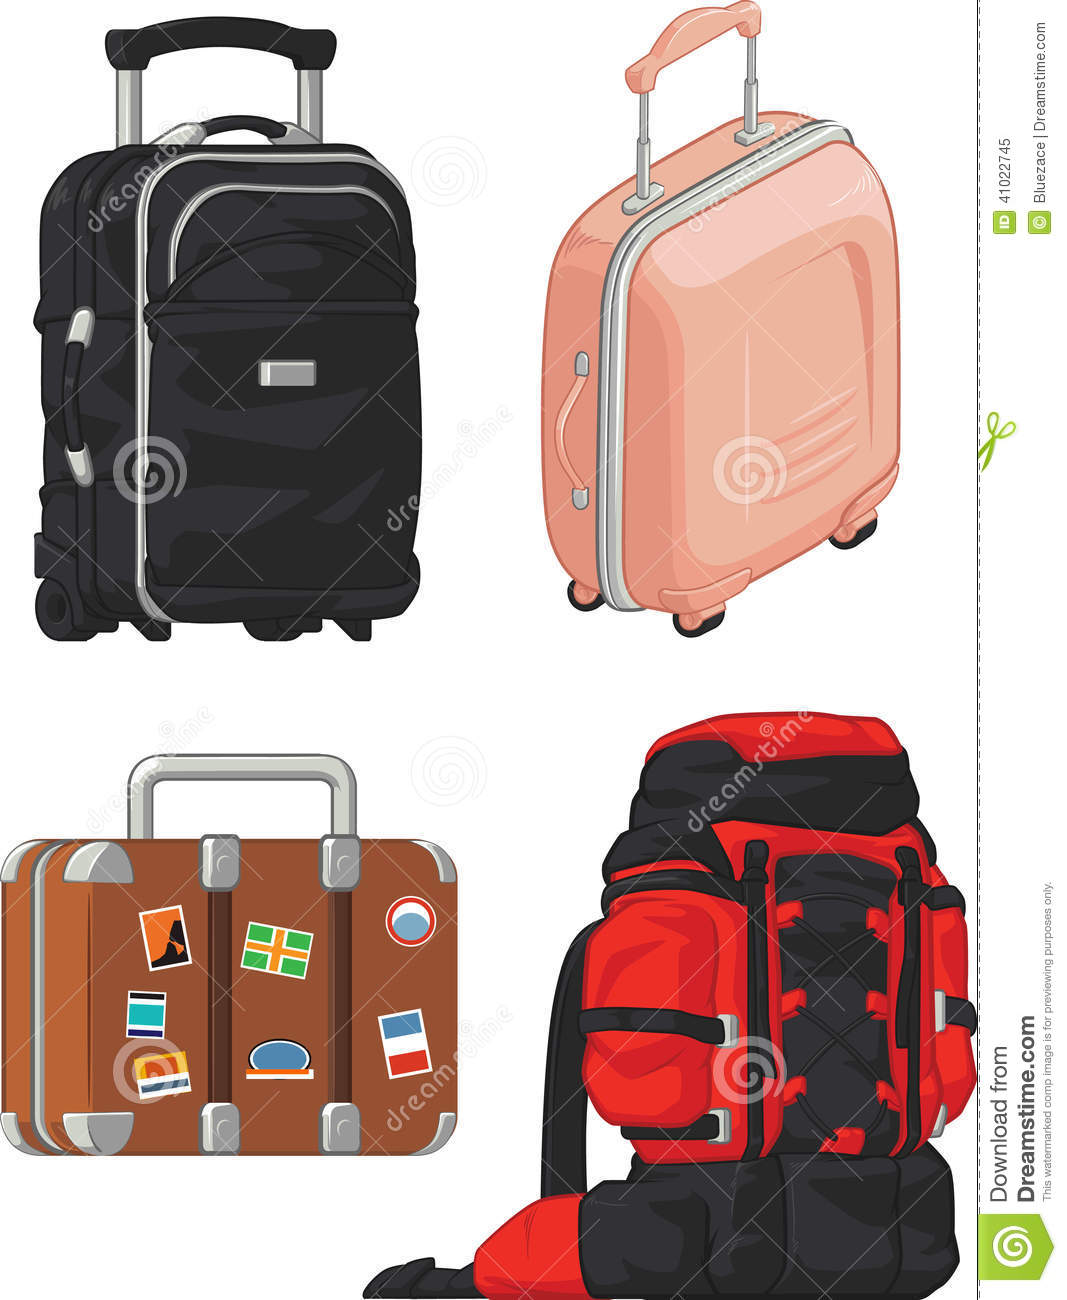 Travel Suitcase And Mountain Bag Stock Vector - Image: 41022745